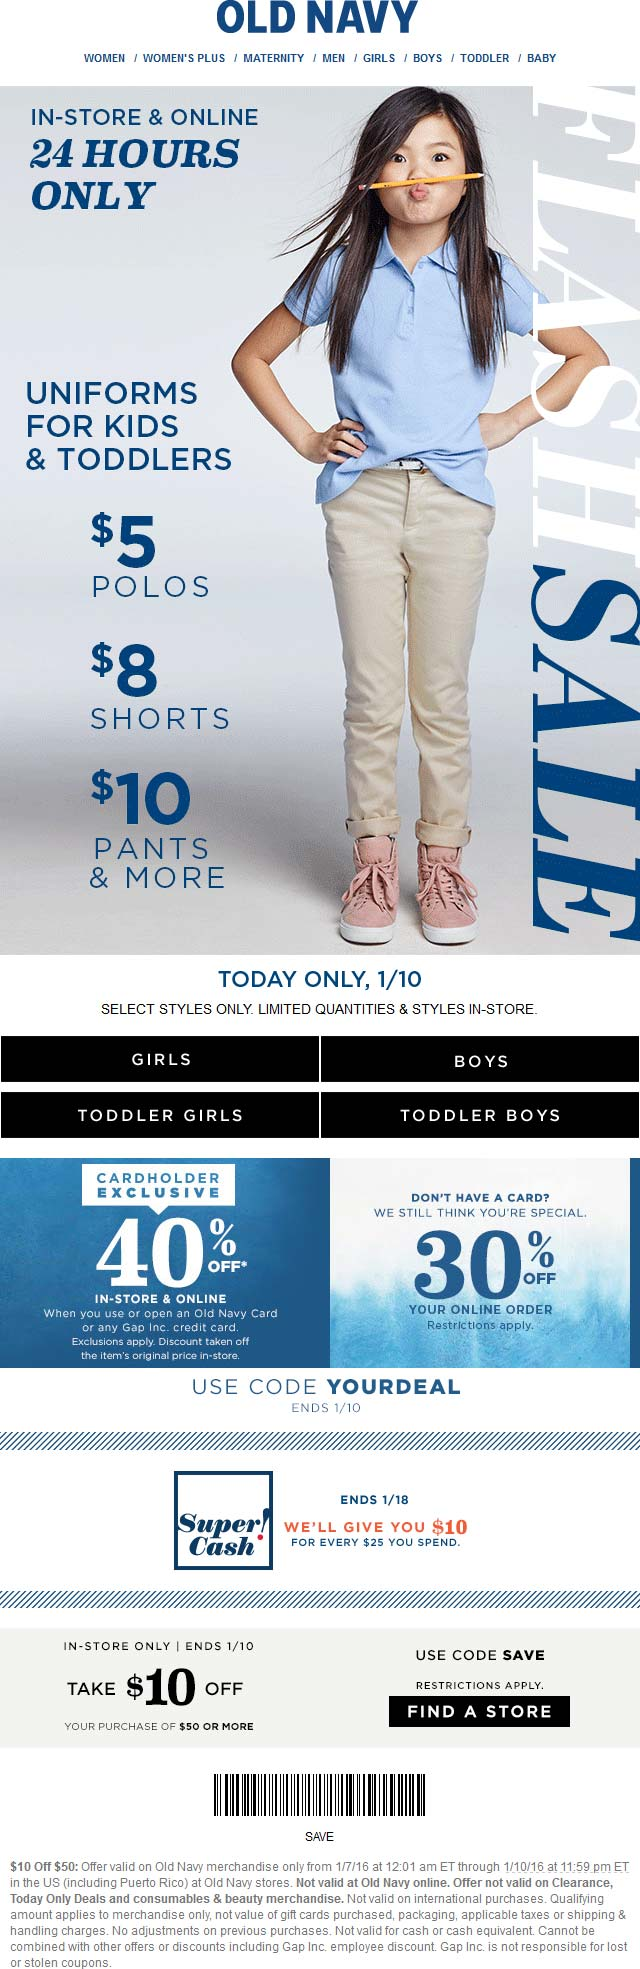 Old Navy Coupon September 2018 $10 off $50 today at Old Navy, or 30% online via promo code SAVE